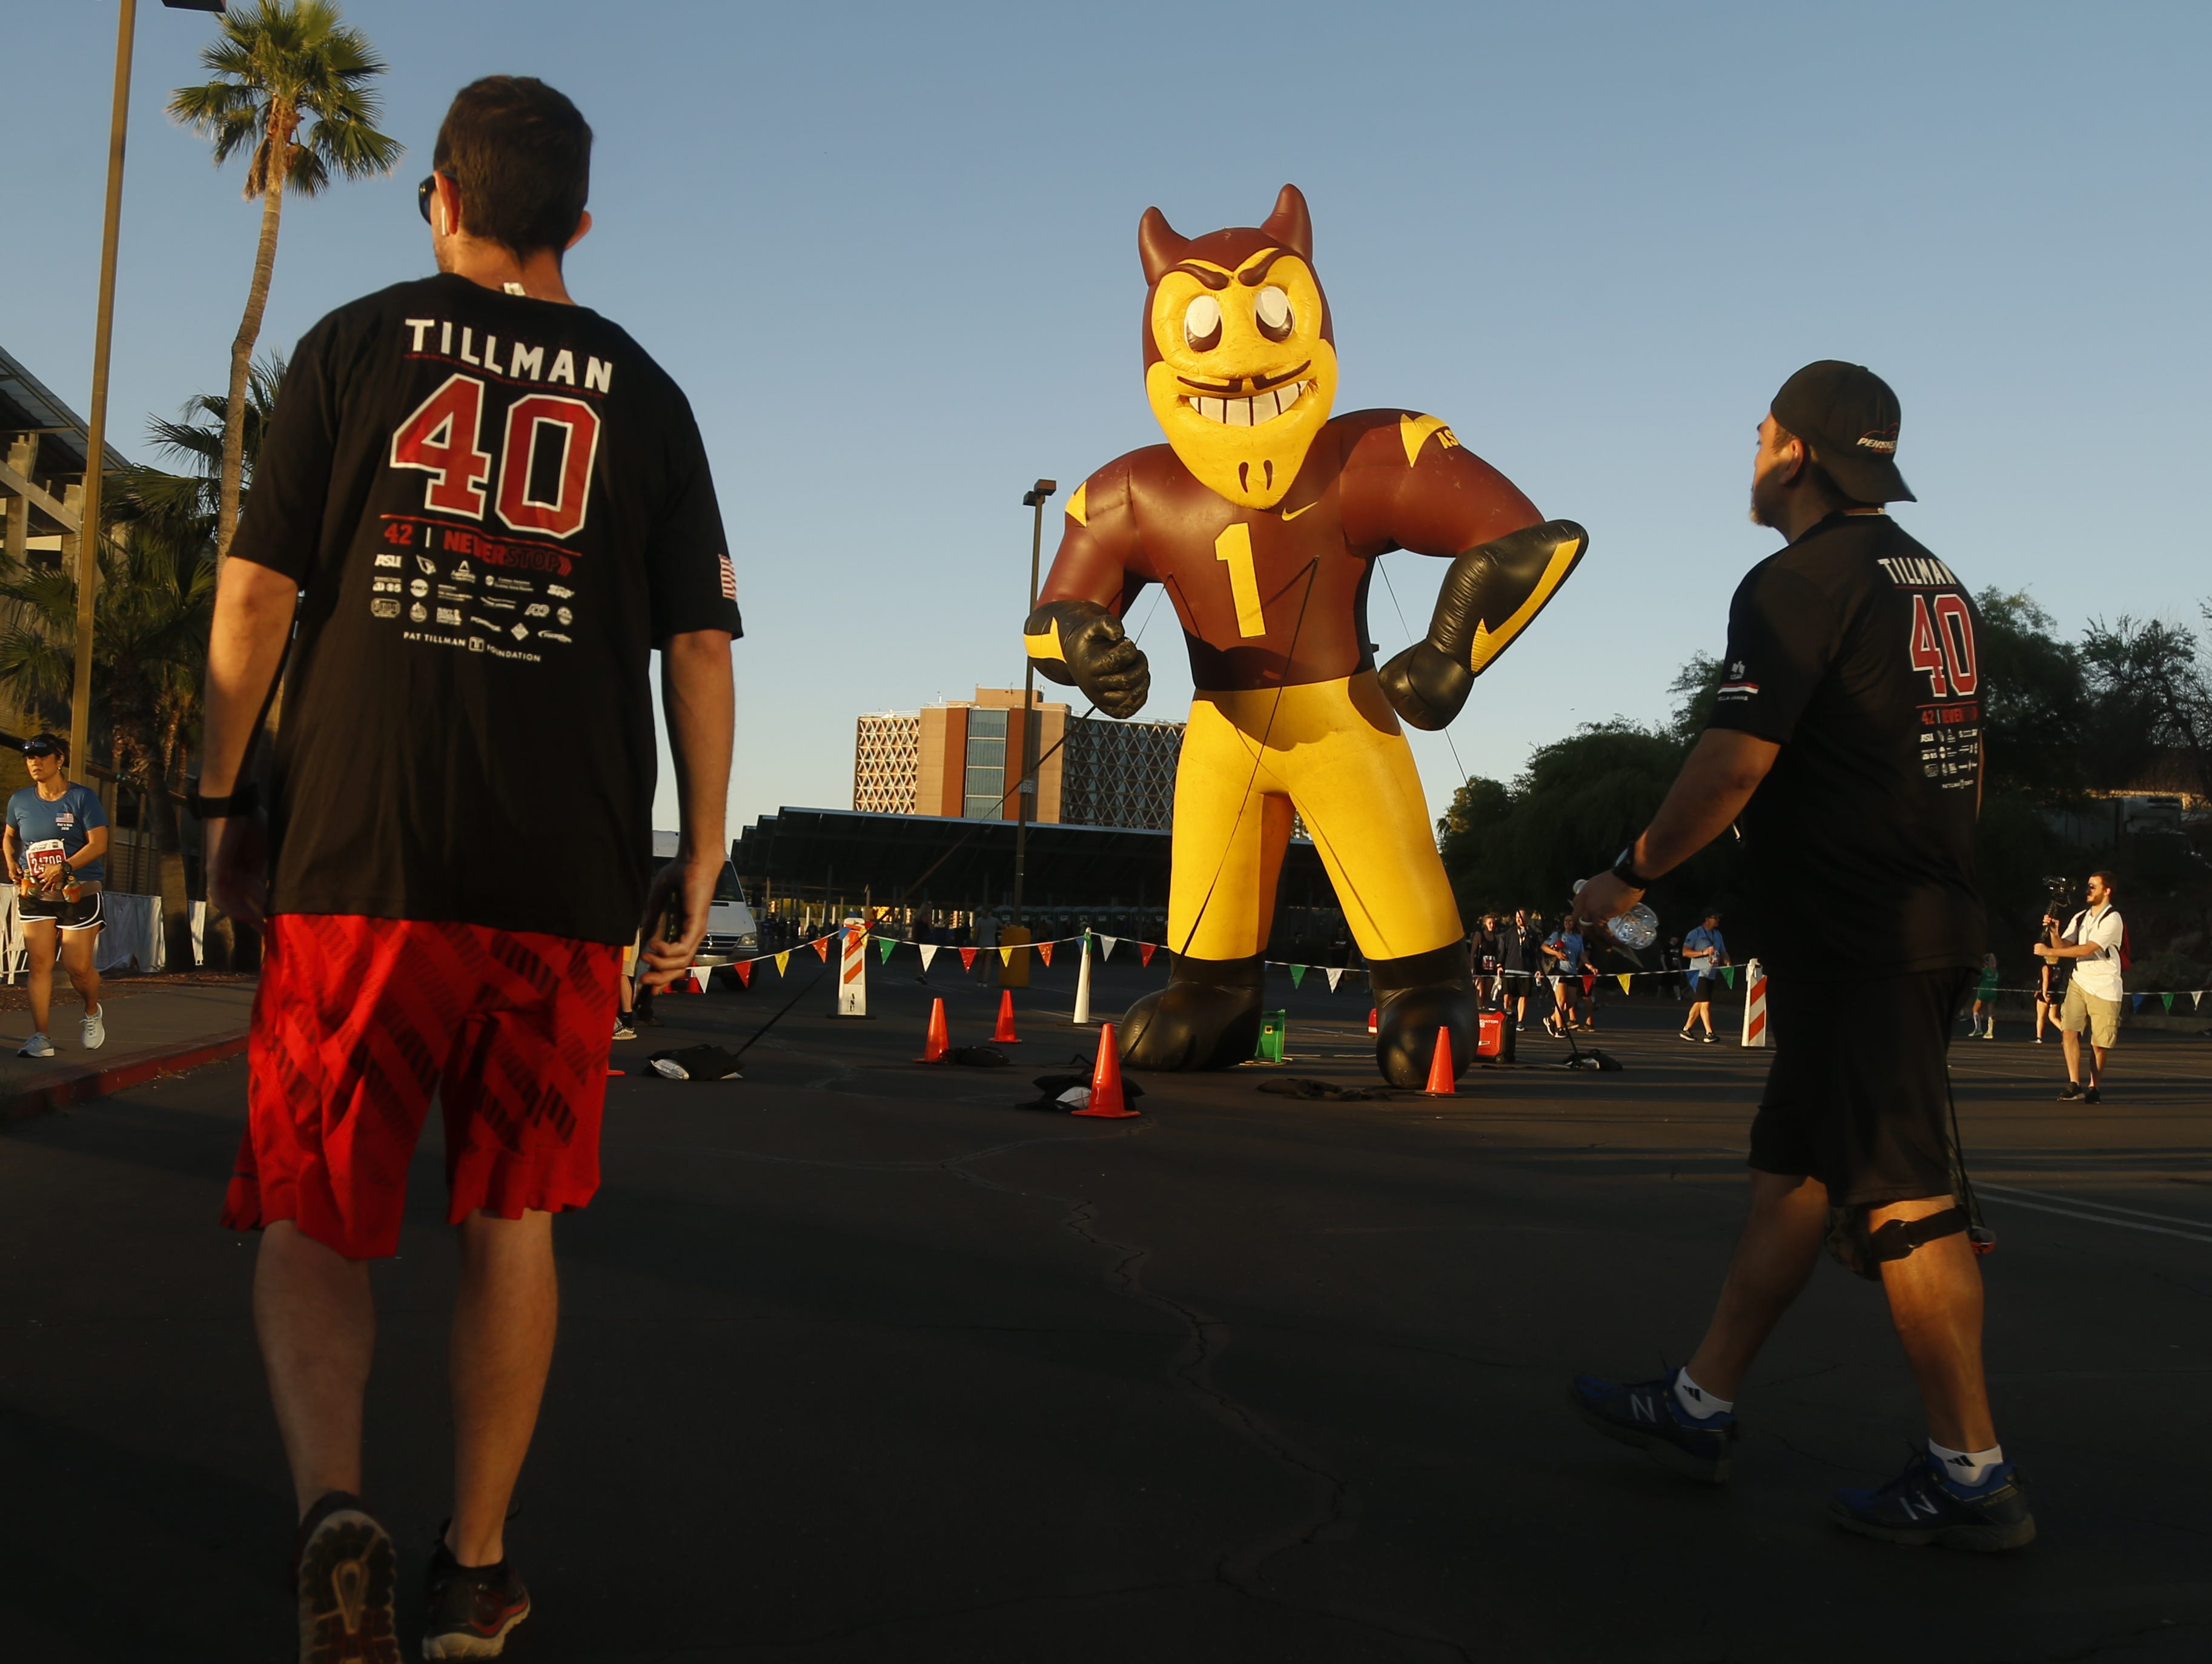 A large blow-up Sparky, the ASU mascot, sits outside the race start before Pat's Run 2019 in Tempe, Ariz. on April 27, 2019.